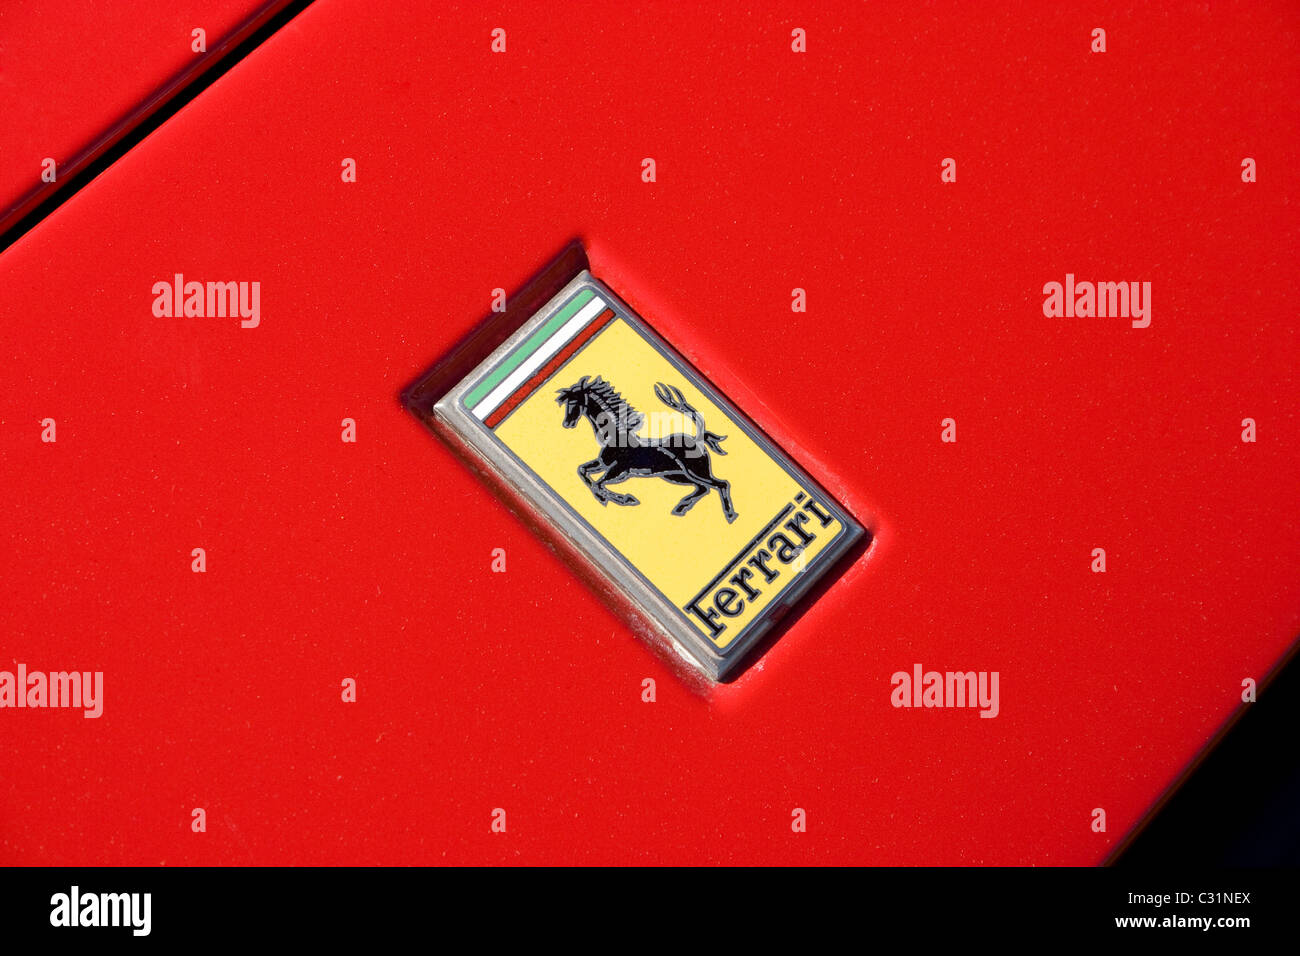 Prancing horse stock photos prancing horse stock images alamy red ferrari badge prancing horse black tricolor green white red italian yellow sports prestige close up biocorpaavc Gallery